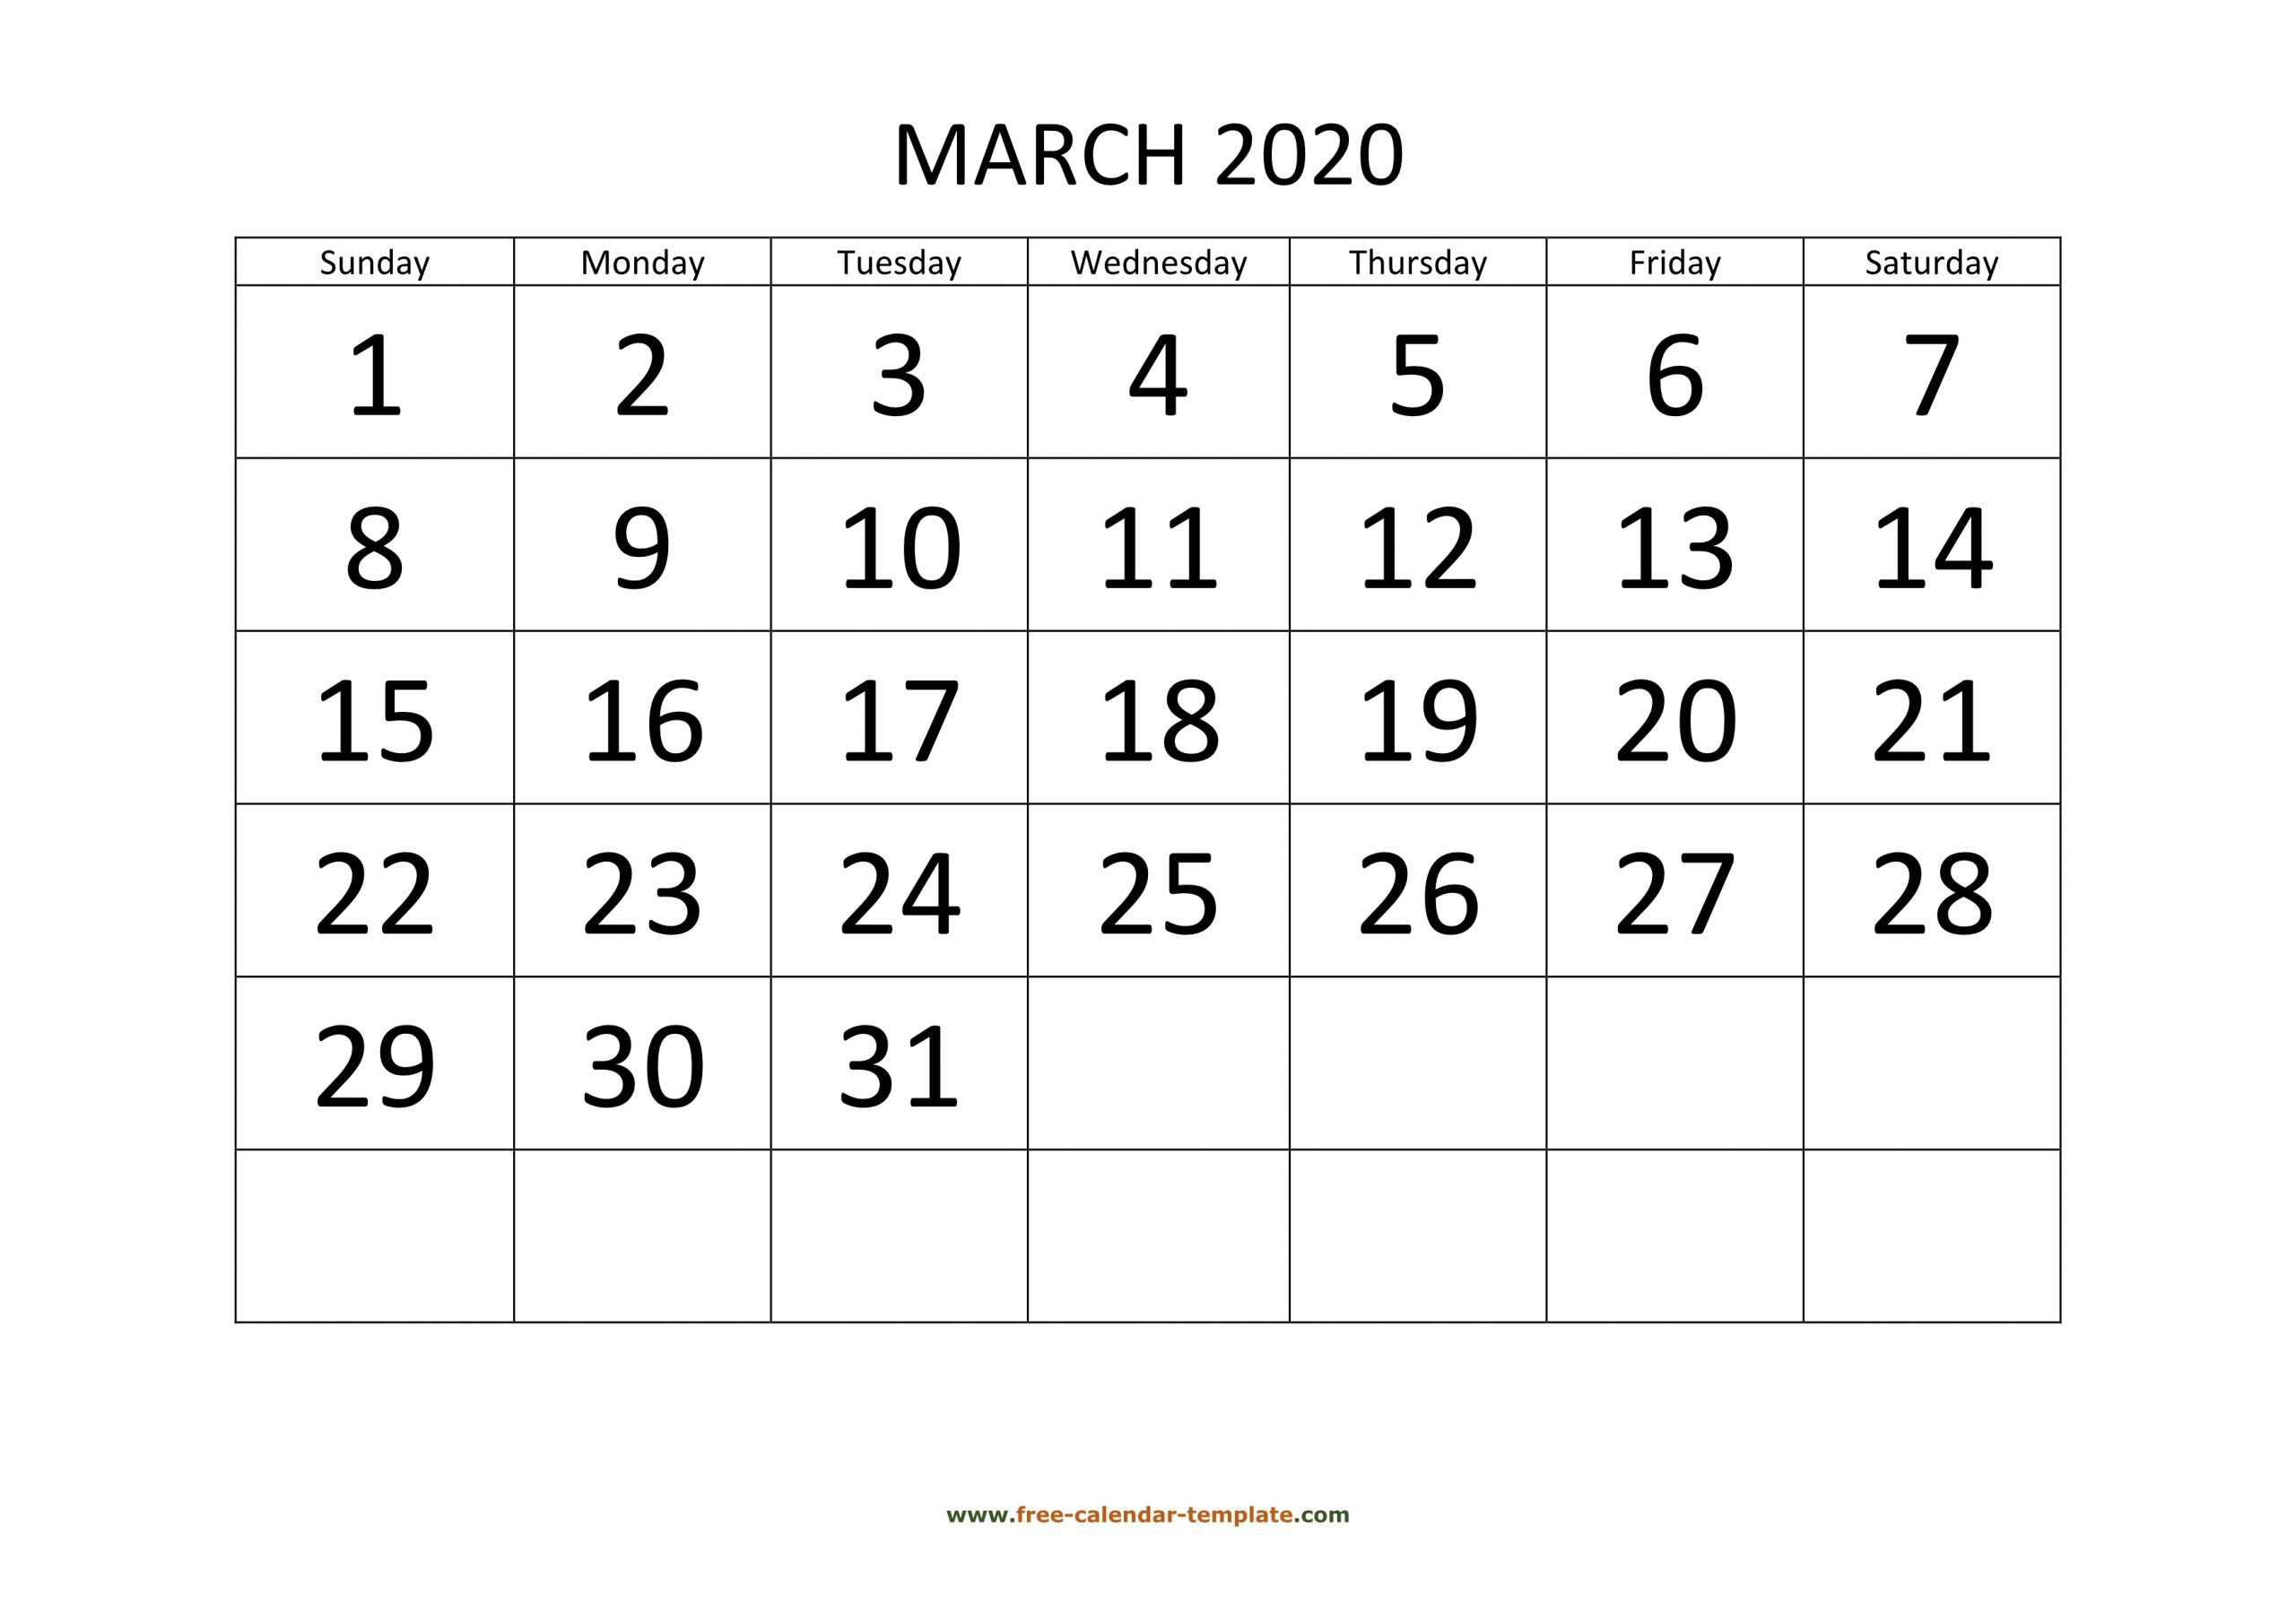 March 2020 Free Calendar Tempplate | Free-Calendar-Template for Large Box Printable 2020 Calendar